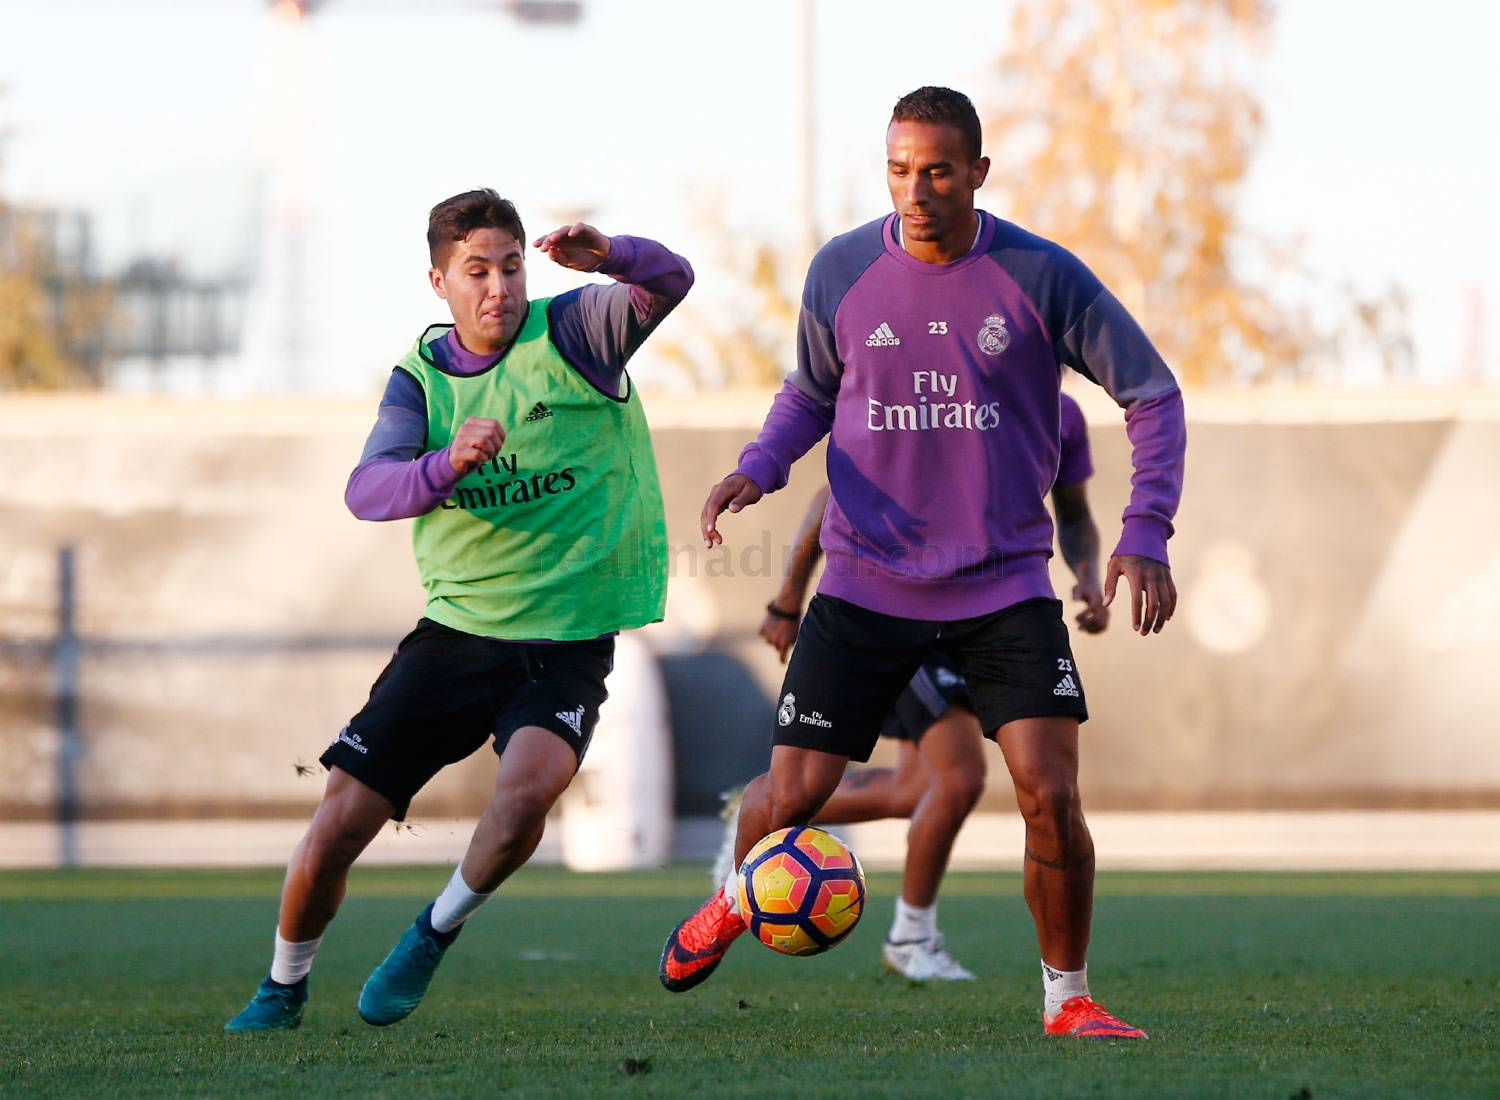 Real Madrid - Entrenamiento del Real Madrid - 14-11-2016